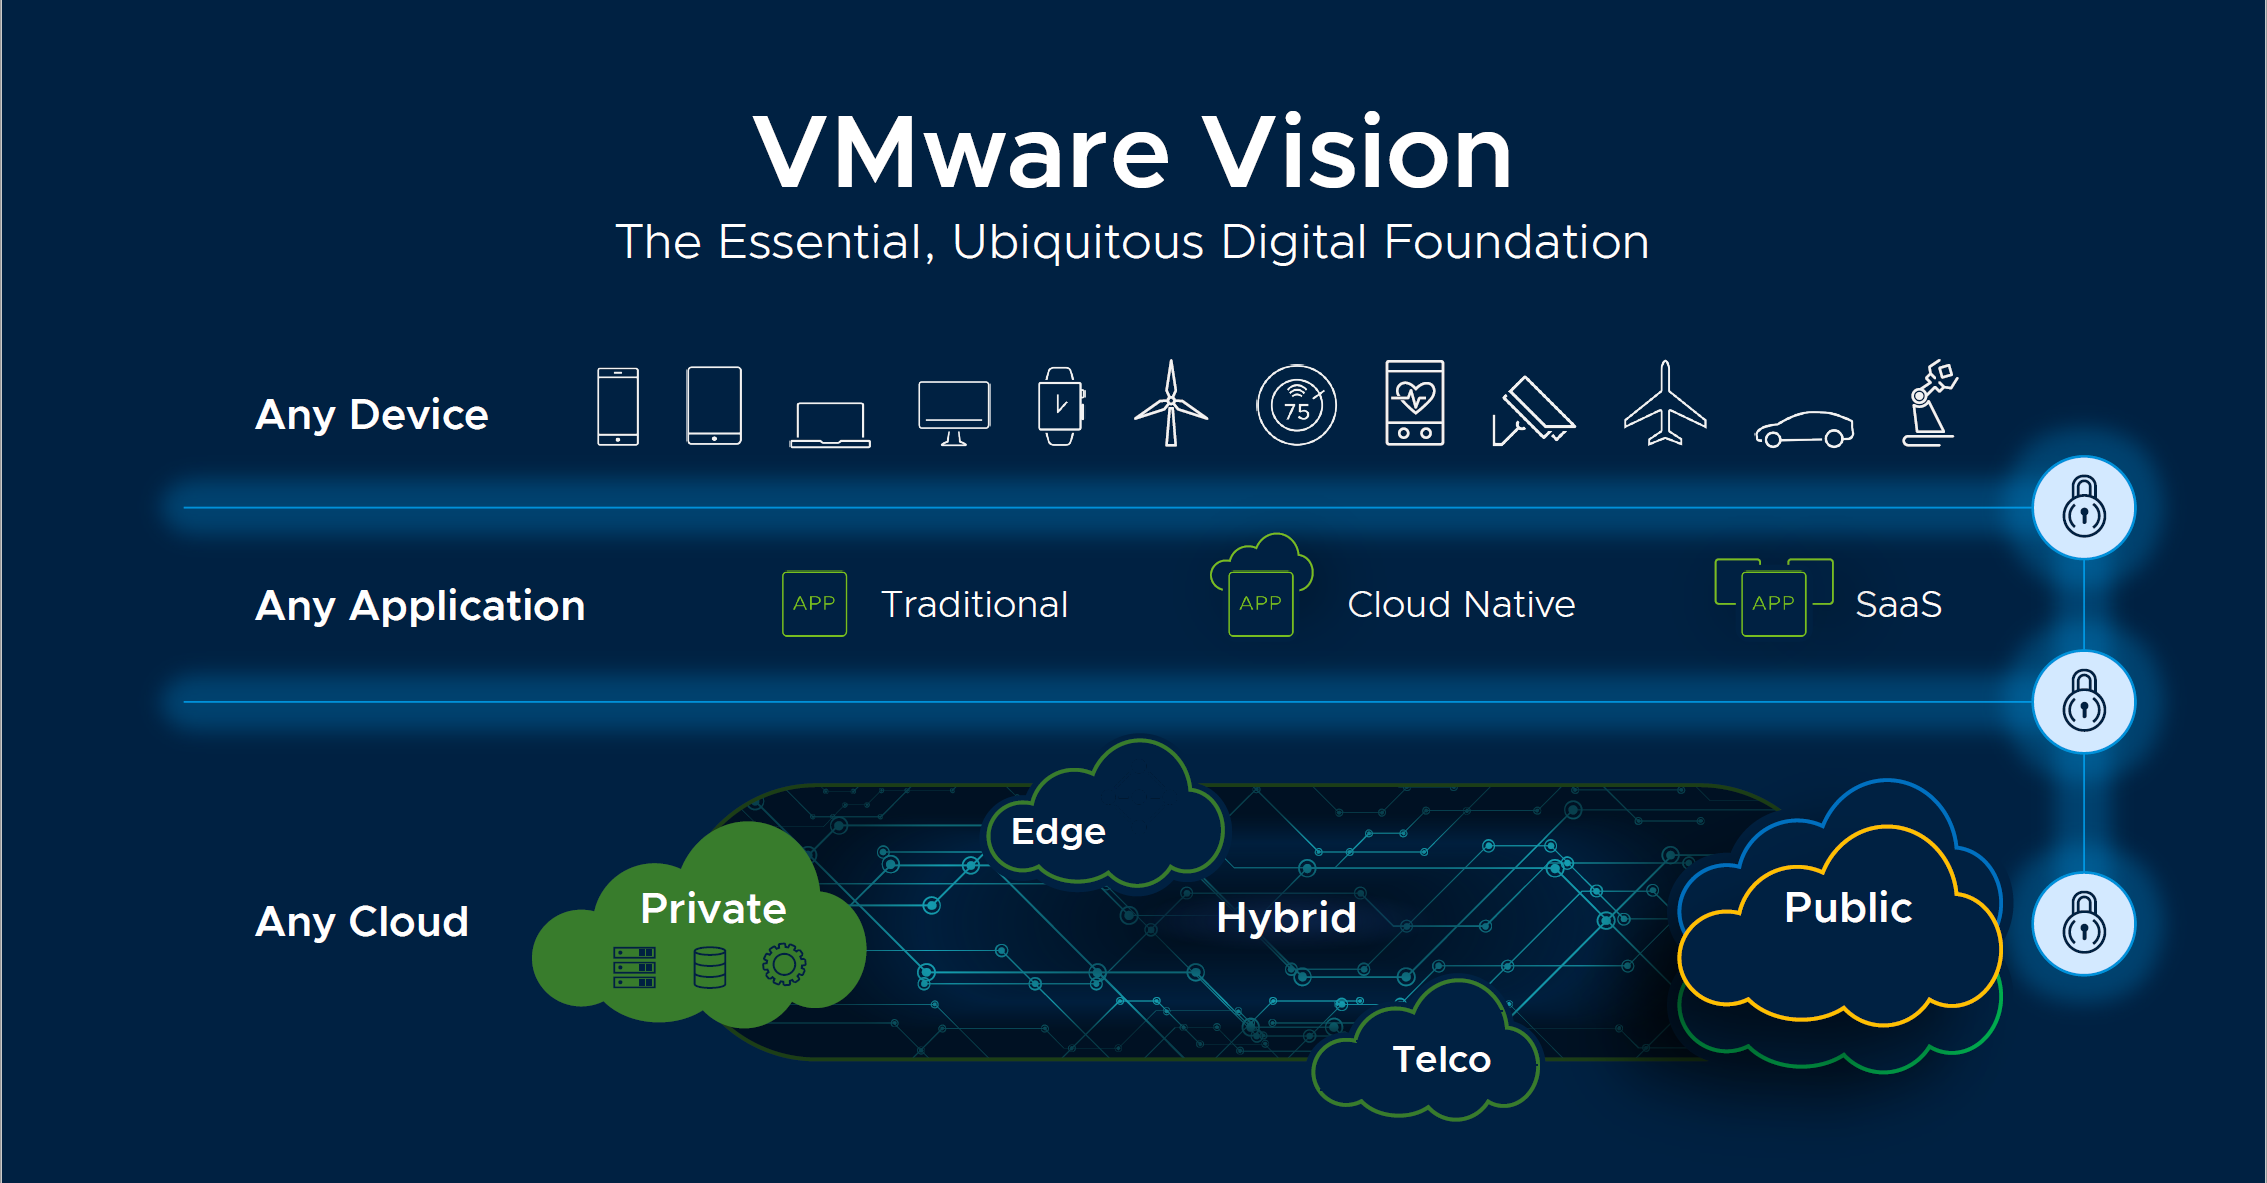 VMware's vision for 2020